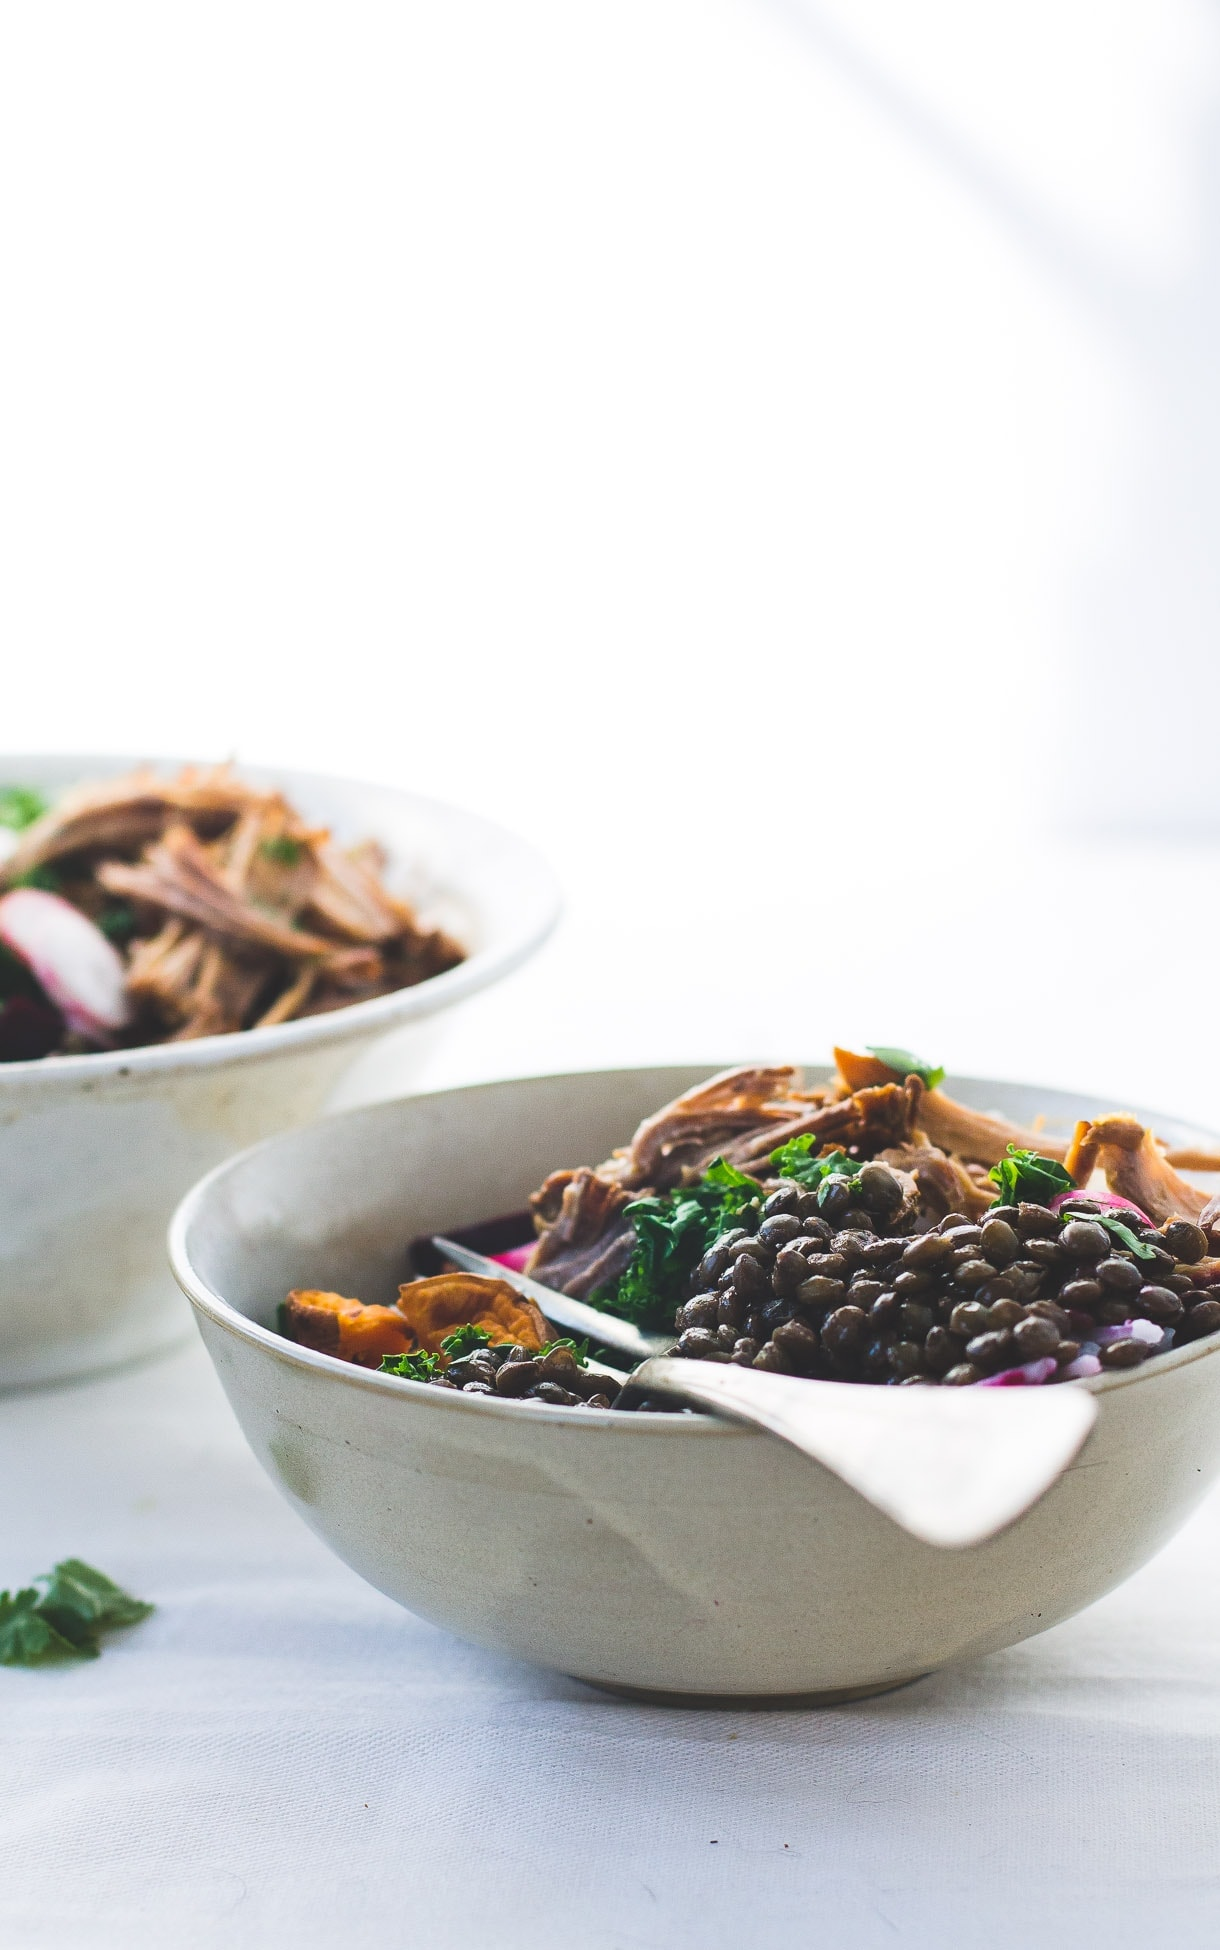 Wholesome Lentil Protein Bowls with Roasted Vegetables and Pork {dairy-free, gluten-free}